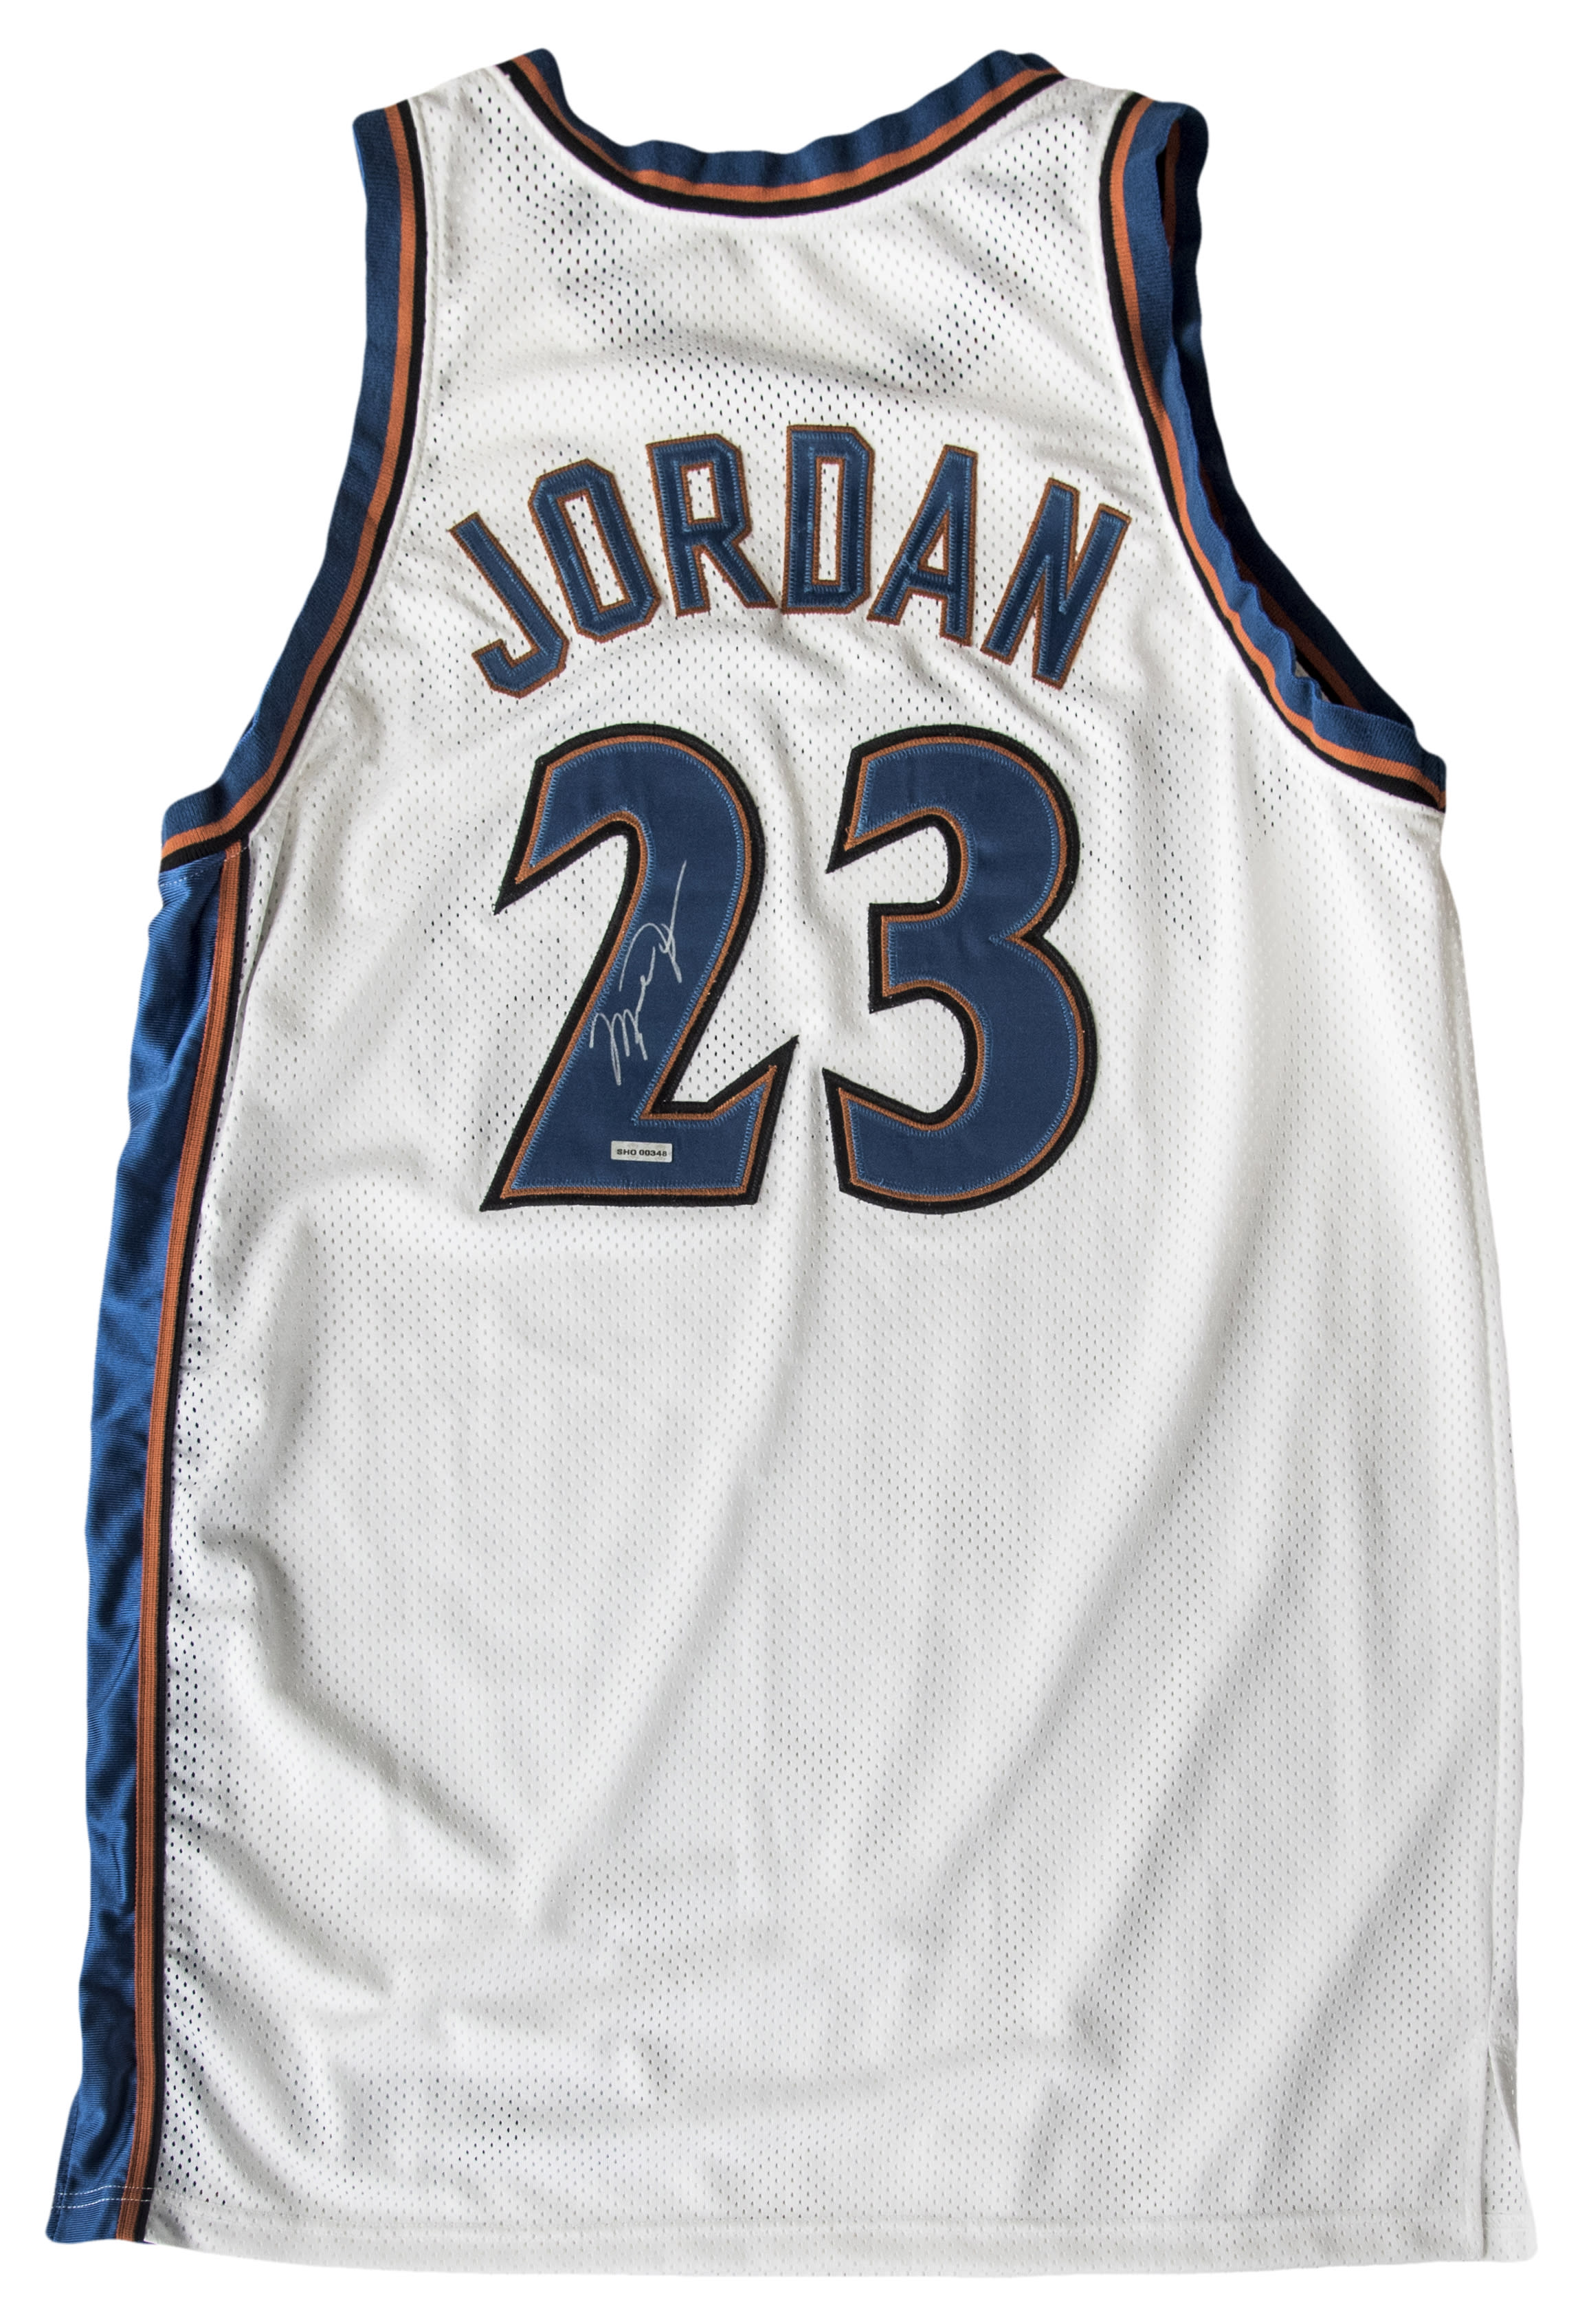 Michael Jordan Washington Wizards Jersey (Back)